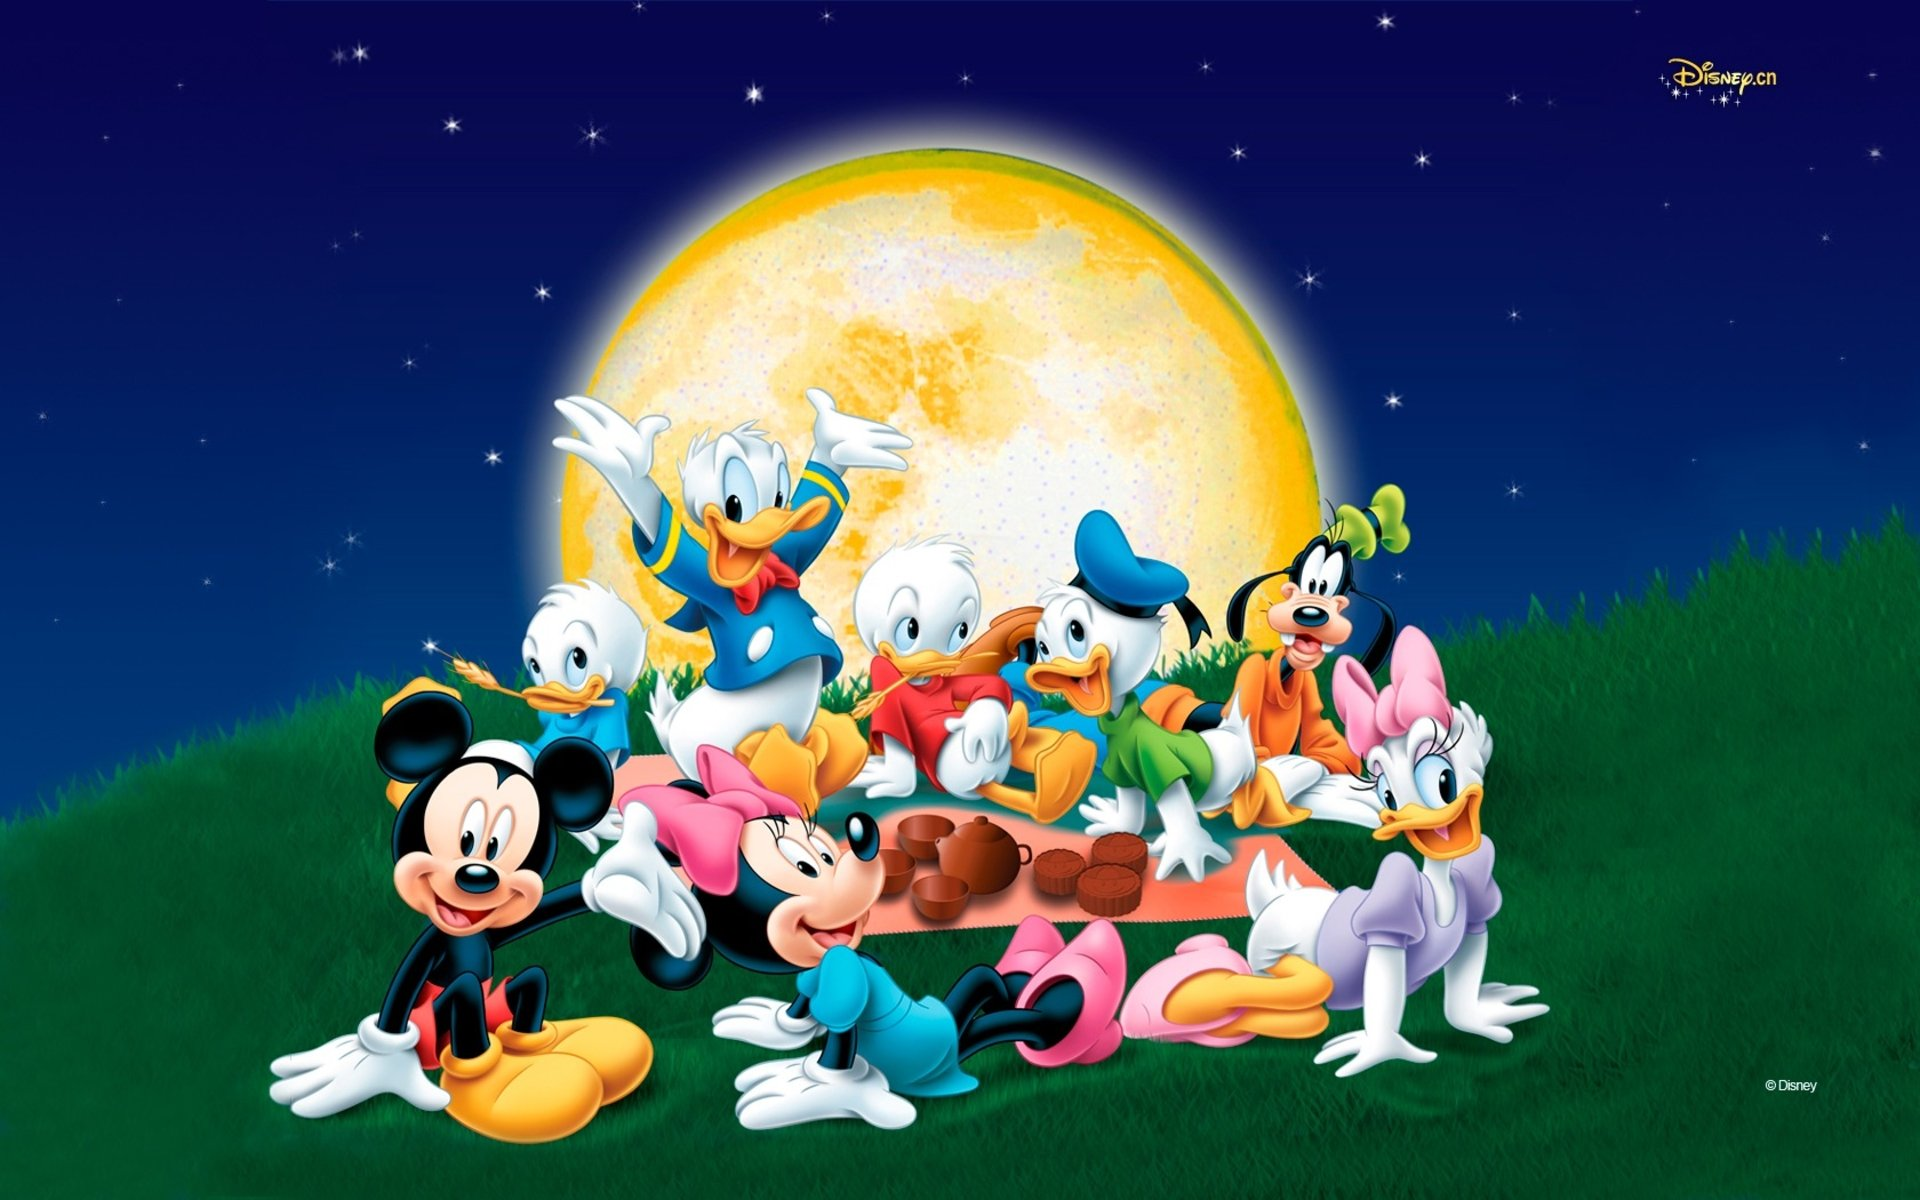 Mickey Mouse Wallpaper Iphone 4 Mickey Mouse And Friends Papel De Parede And Planos De